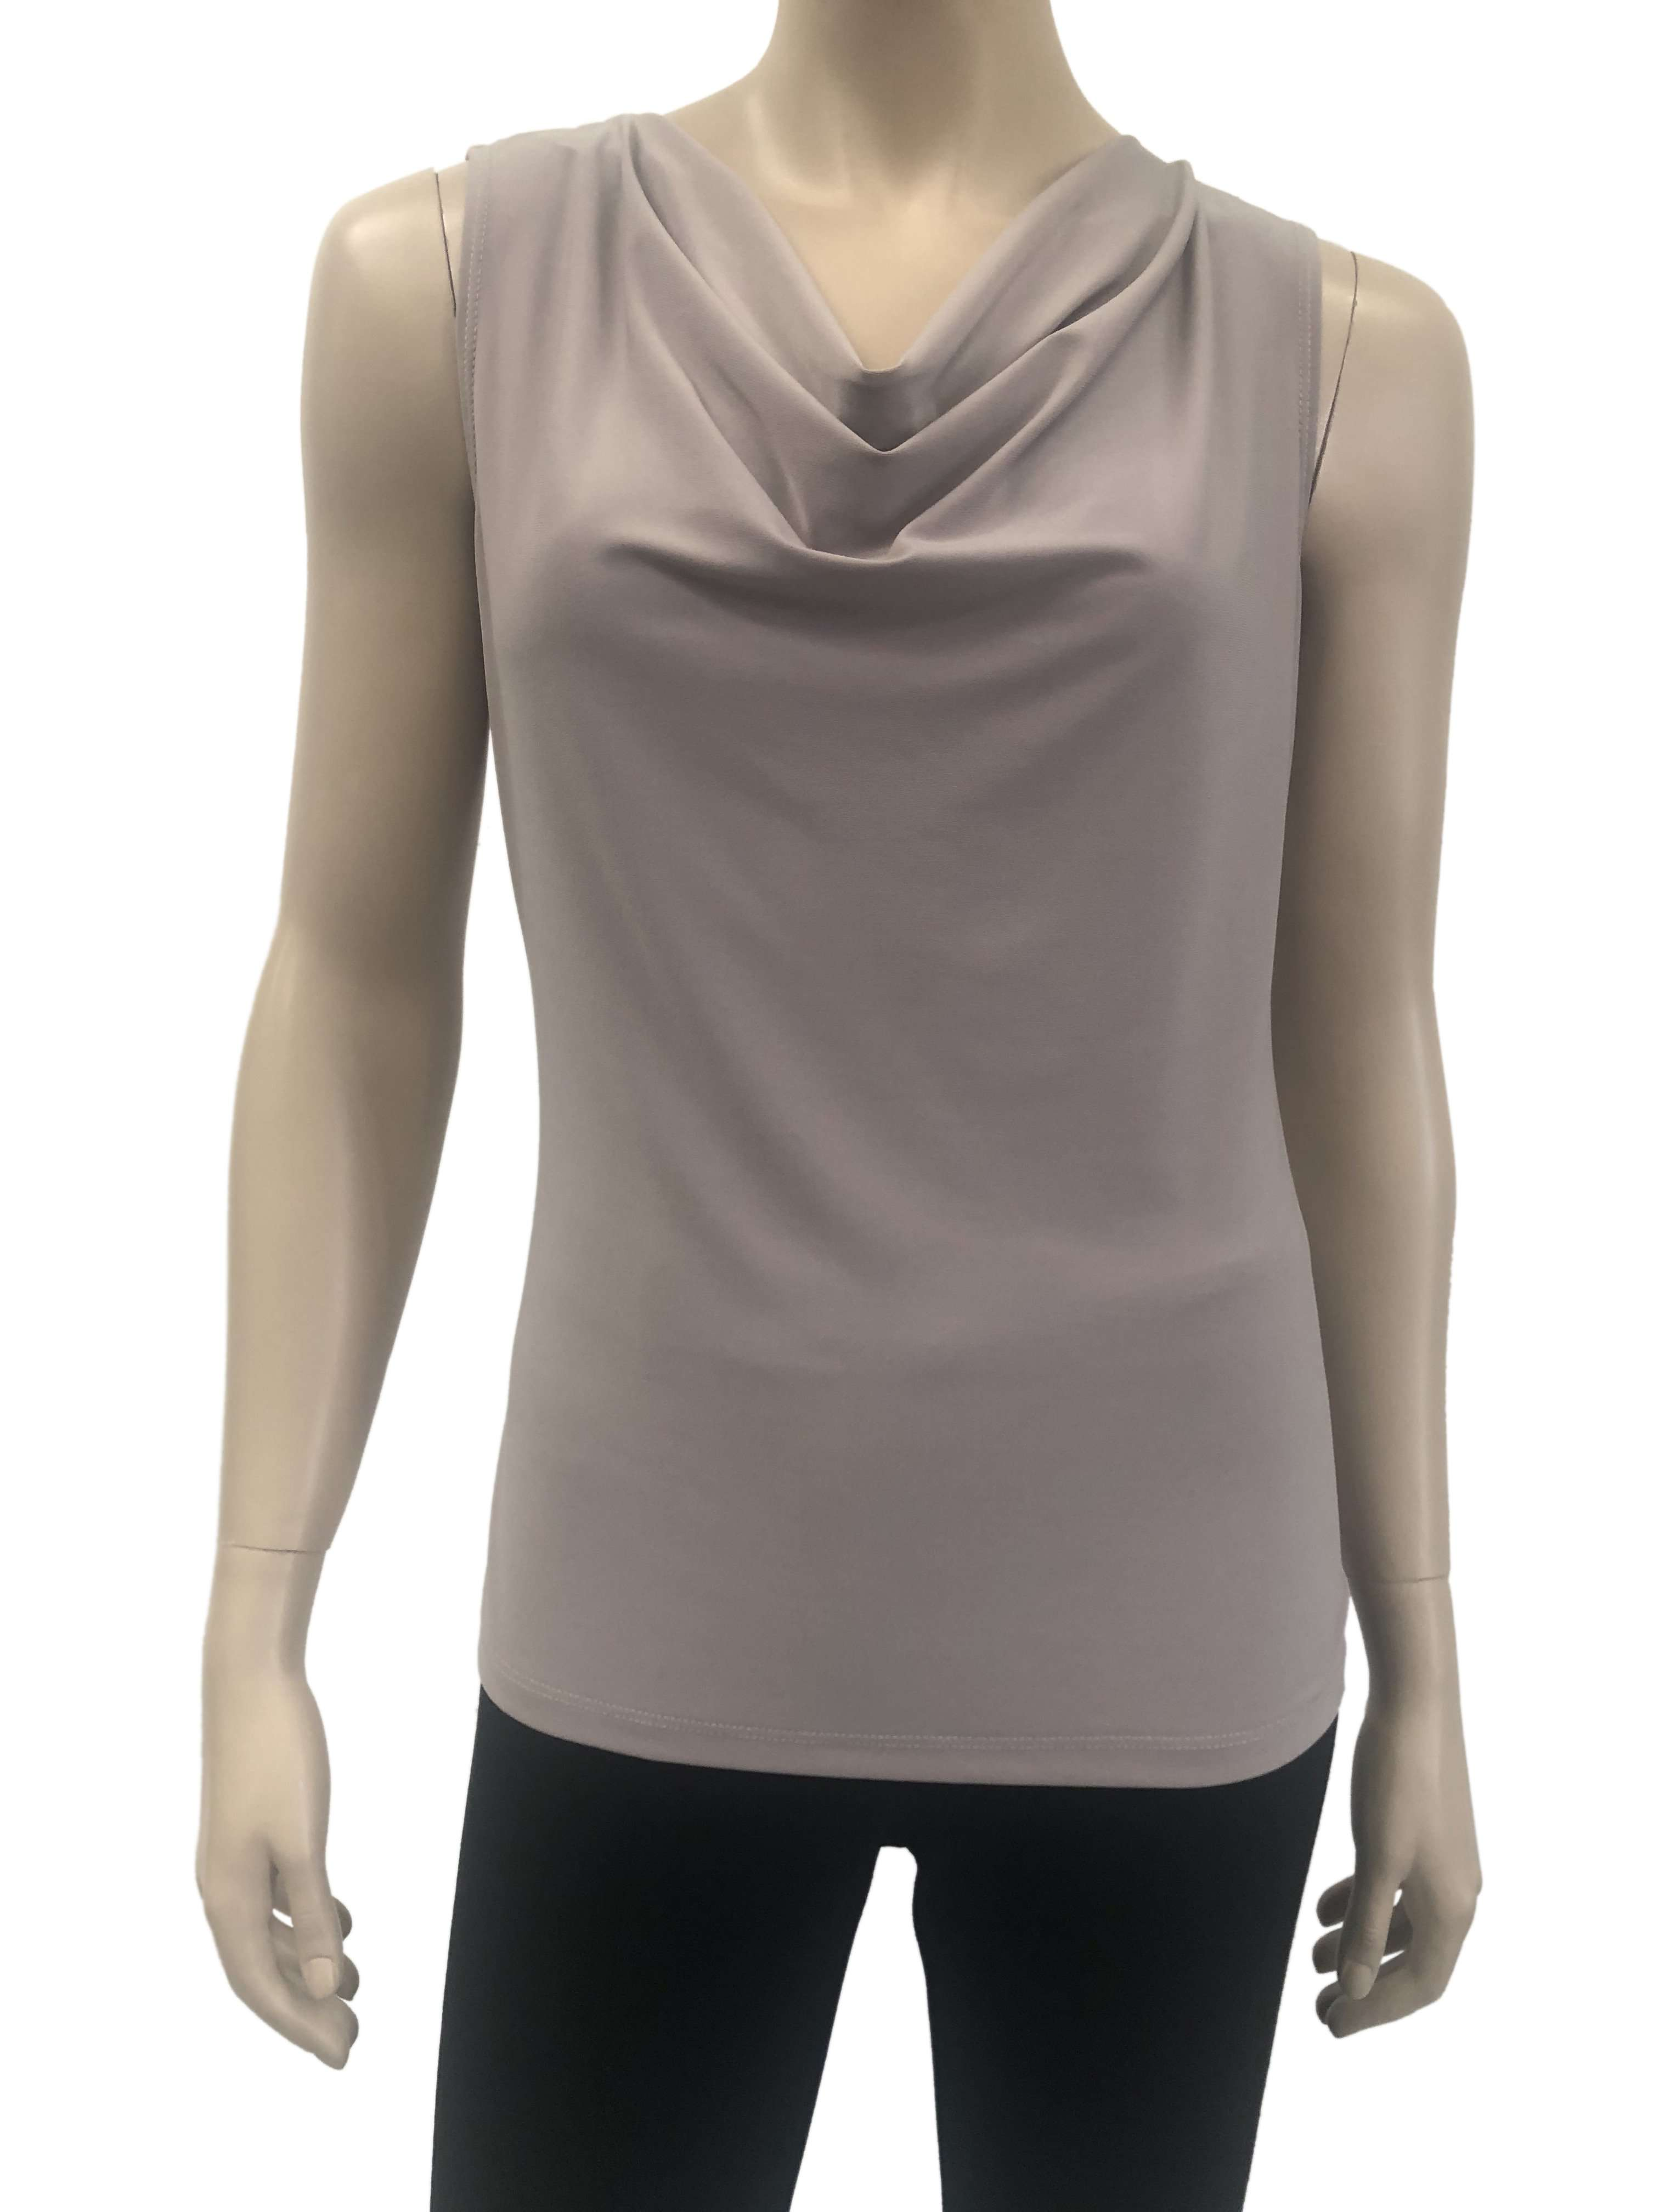 Womens Taupe Camisole - Yvonne Marie - Yvonne Marie